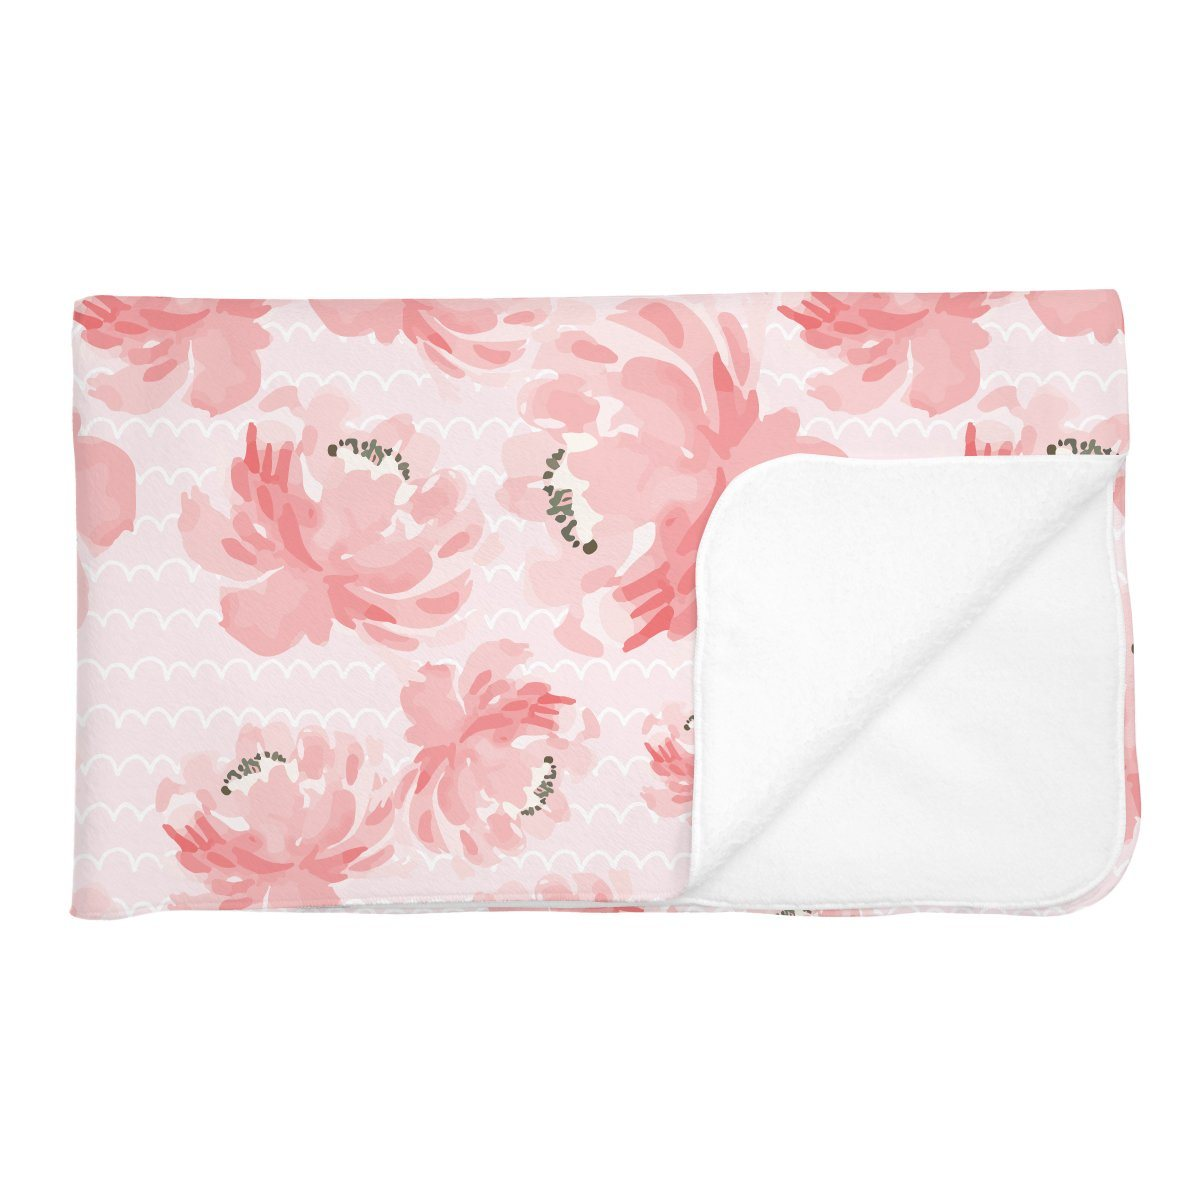 Isabella's Scallops and Peonies | Adult Size Blanket